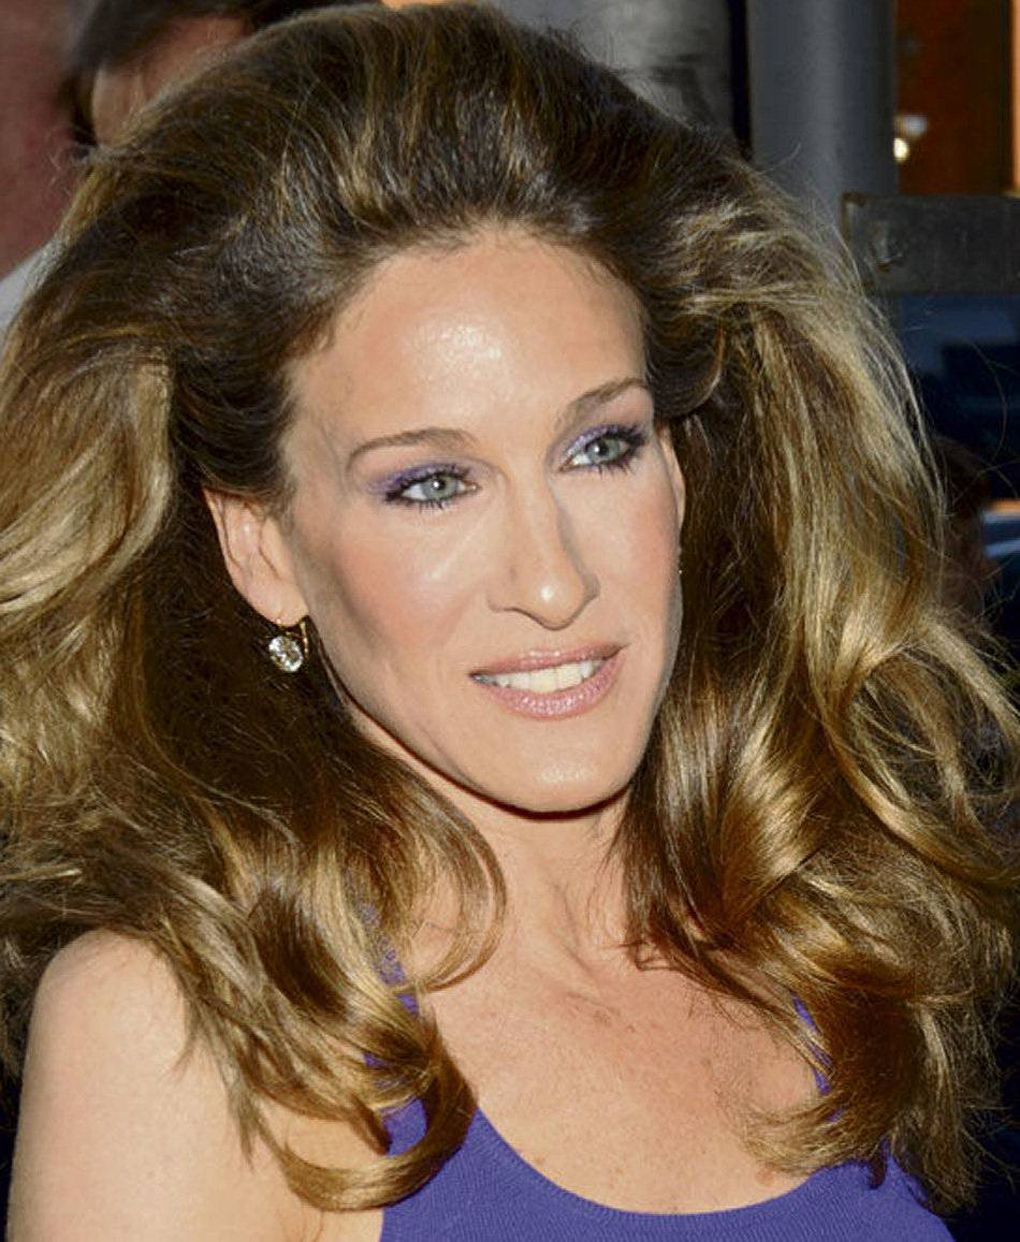 Big 80s Hair Makes A Celeb Comeback The Globe And Mail